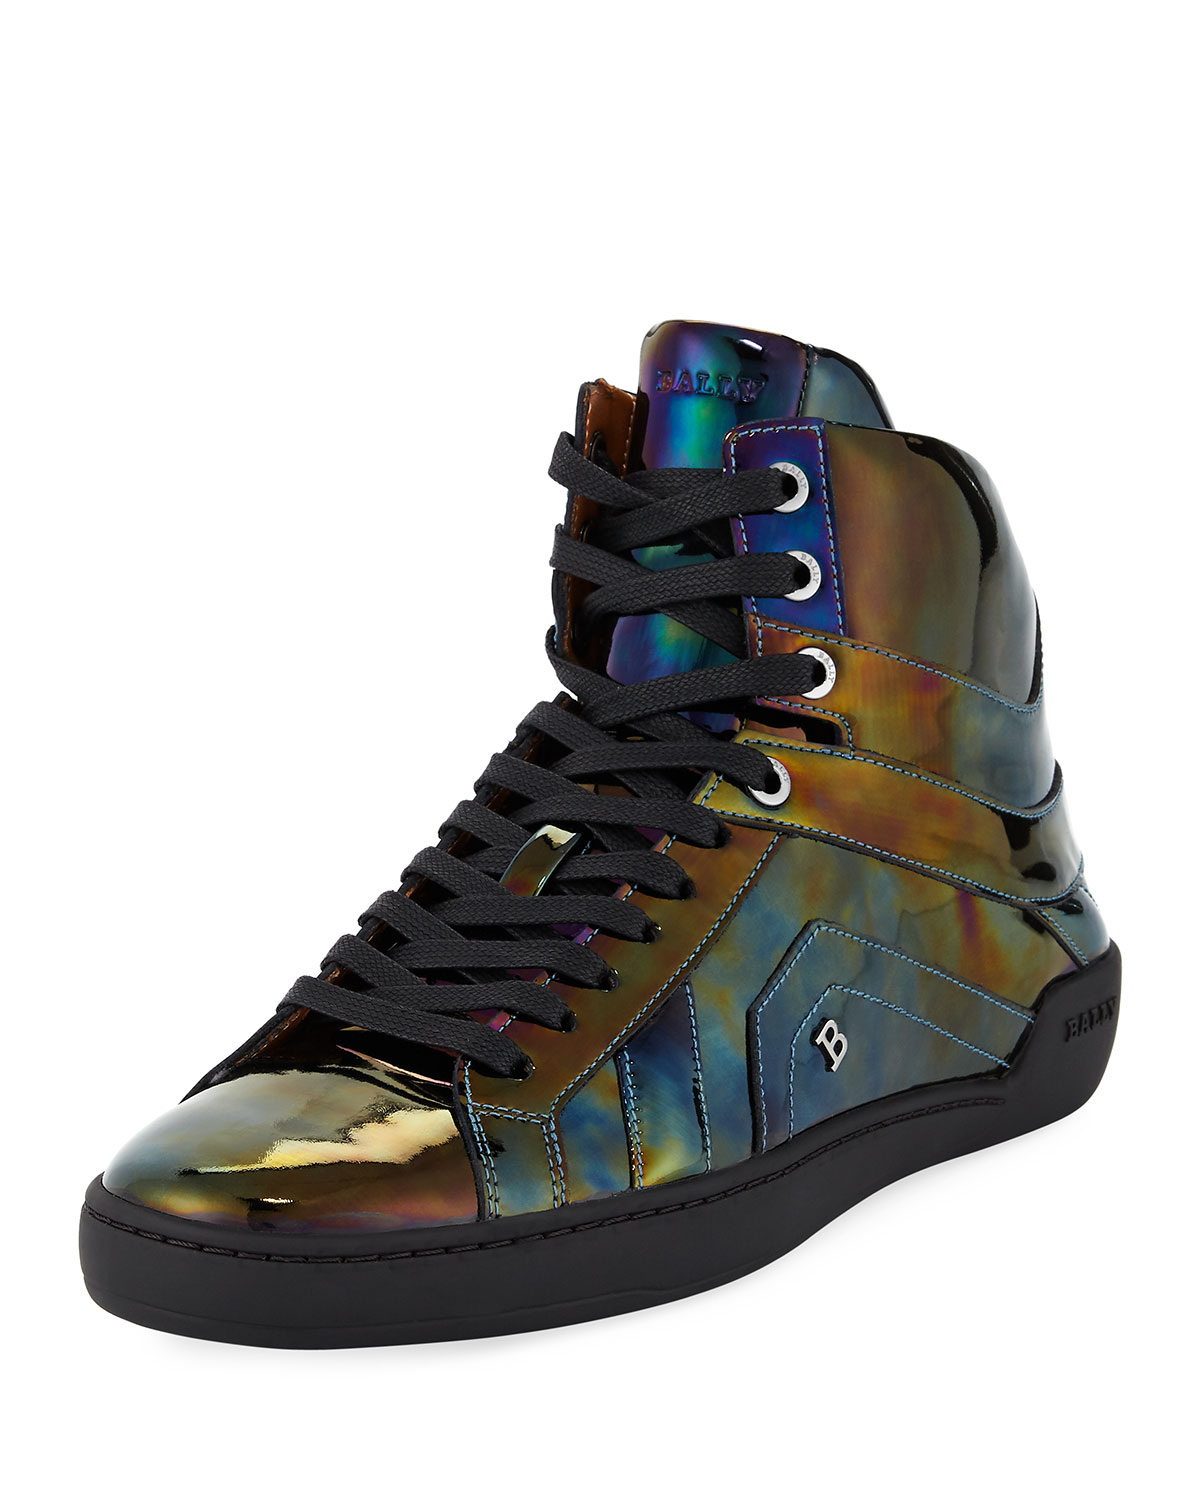 bcbbff90f4a83 Bally Men s Eticon Petrol Patent Leather High-Top Sneakers